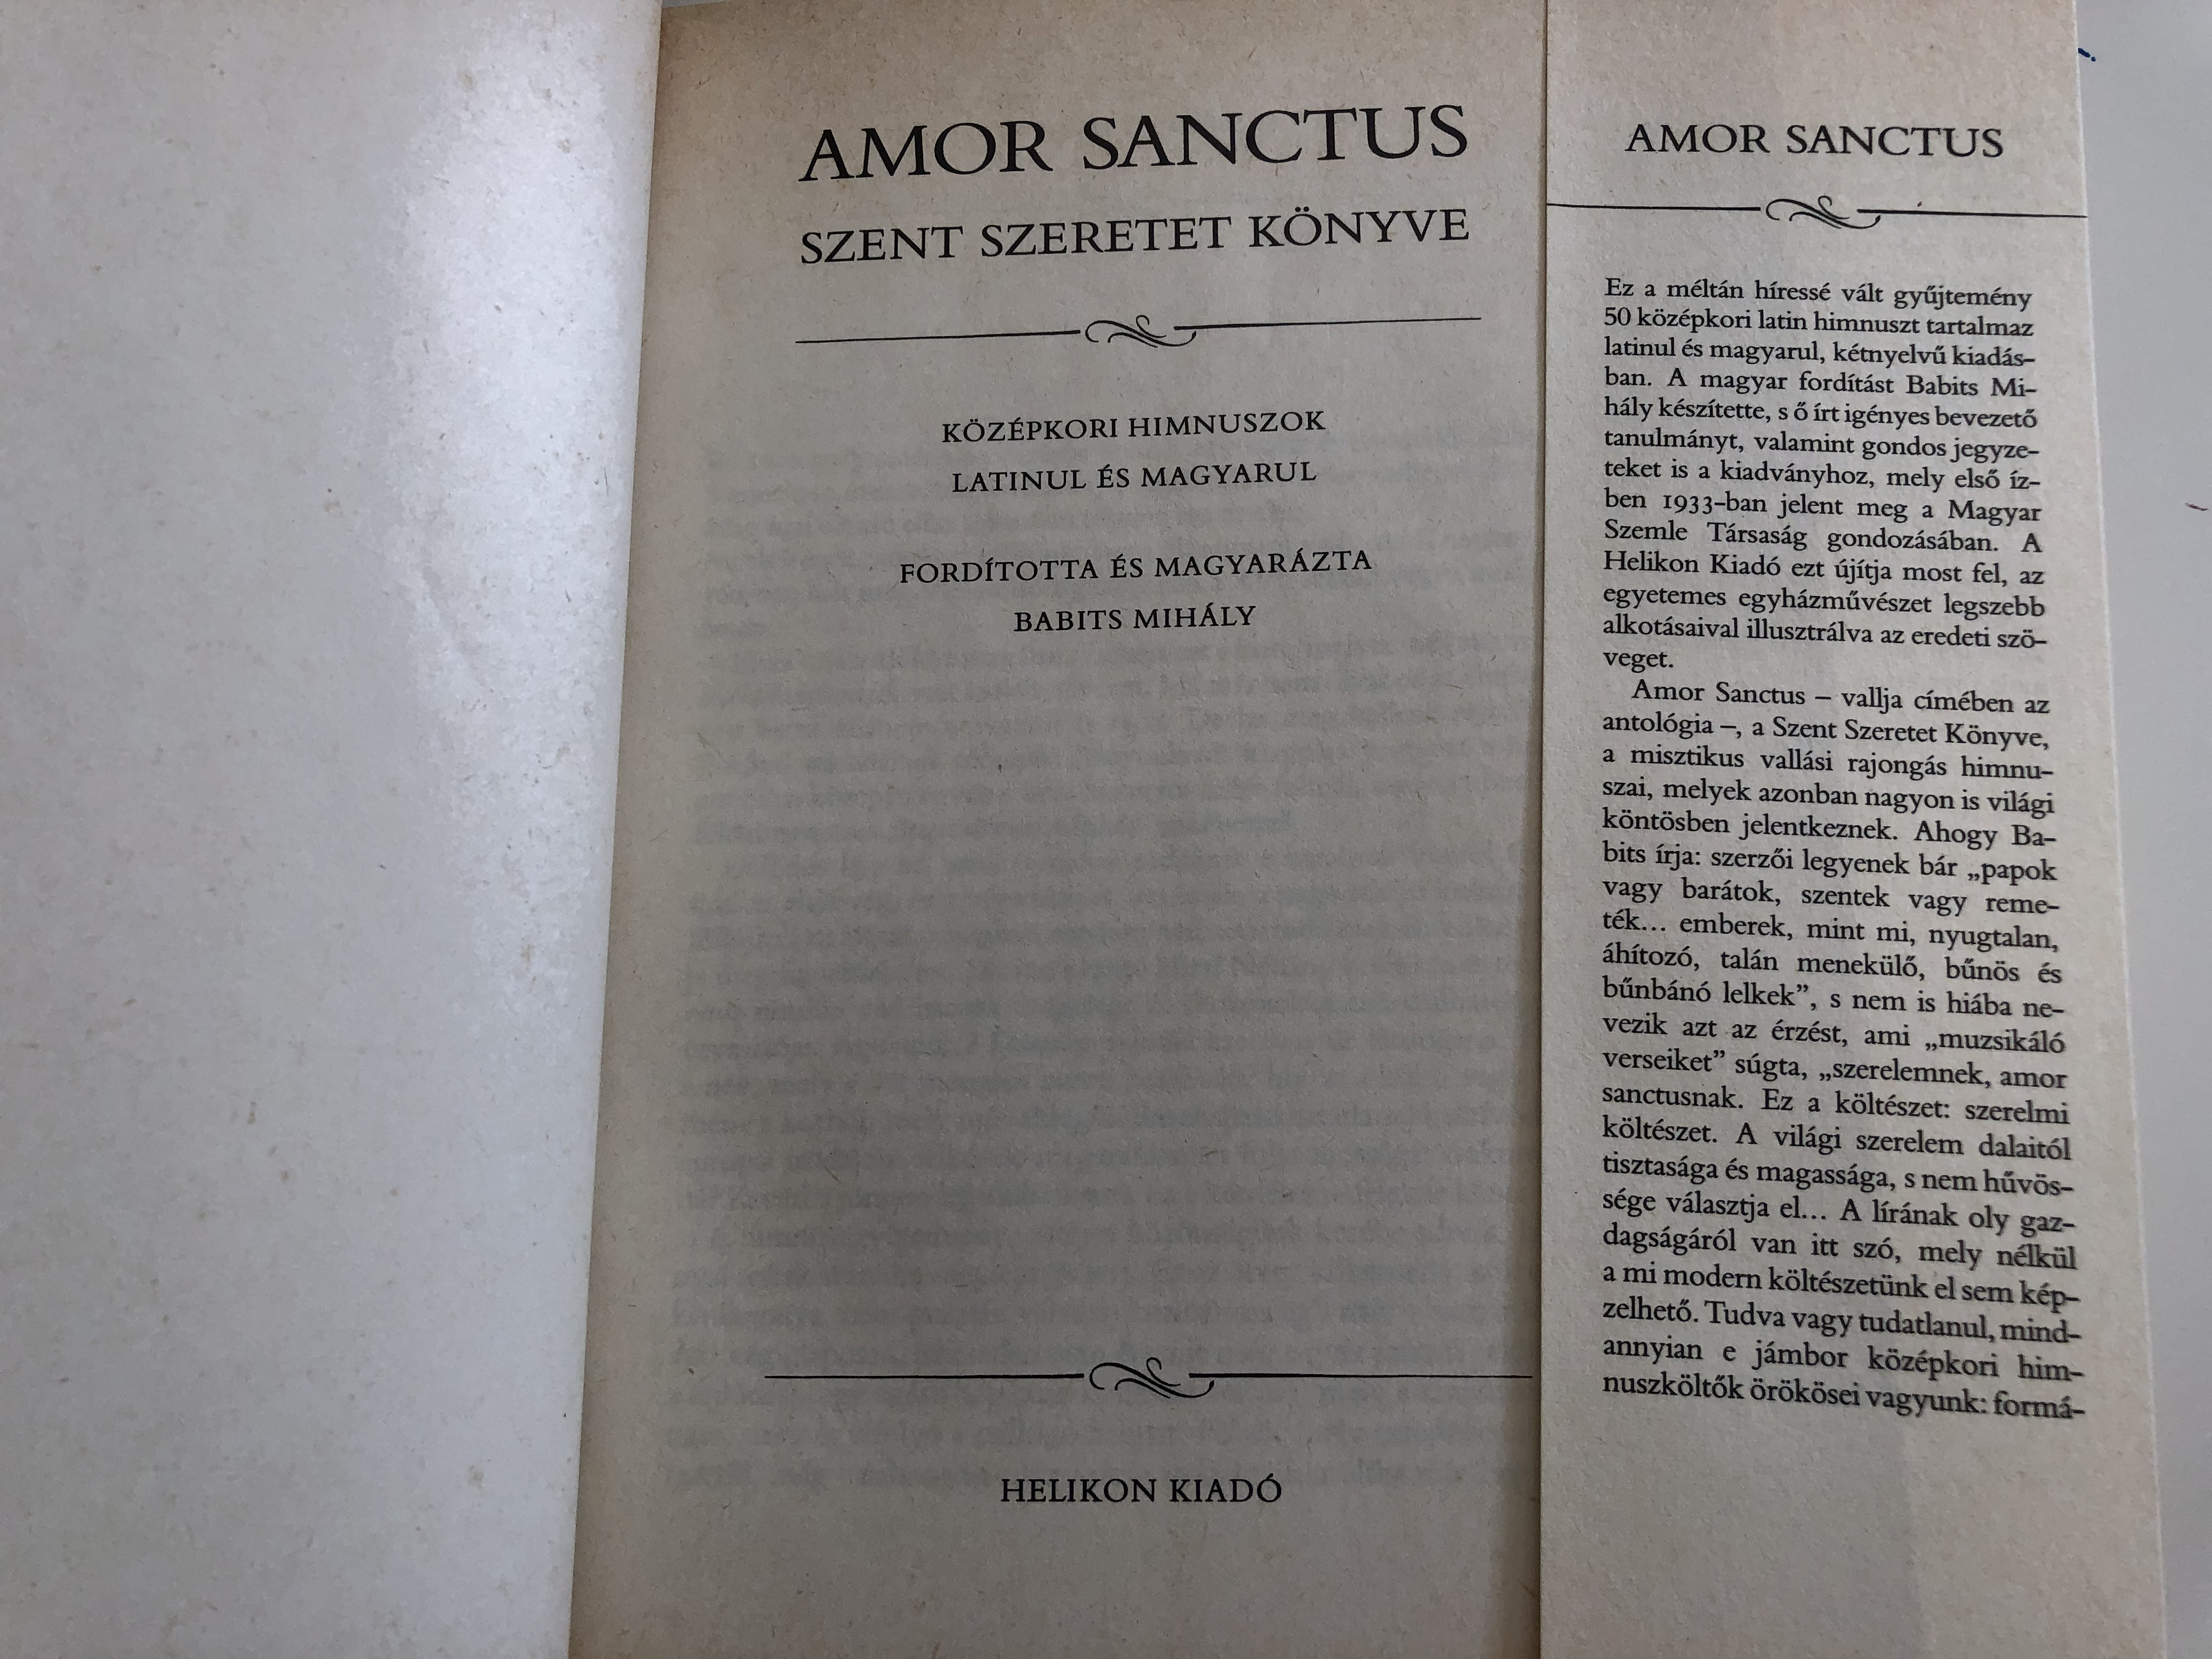 amor-sanctus-medieval-hymns-in-latin-and-hungarian-szent-szeretet-k-nyve-translated-and-interpreted-by-babits-mih-ly-k-z-pkori-himnuszok-latinul-s-magyarul-hardcover-1988-helikon-he213-4-.jpg